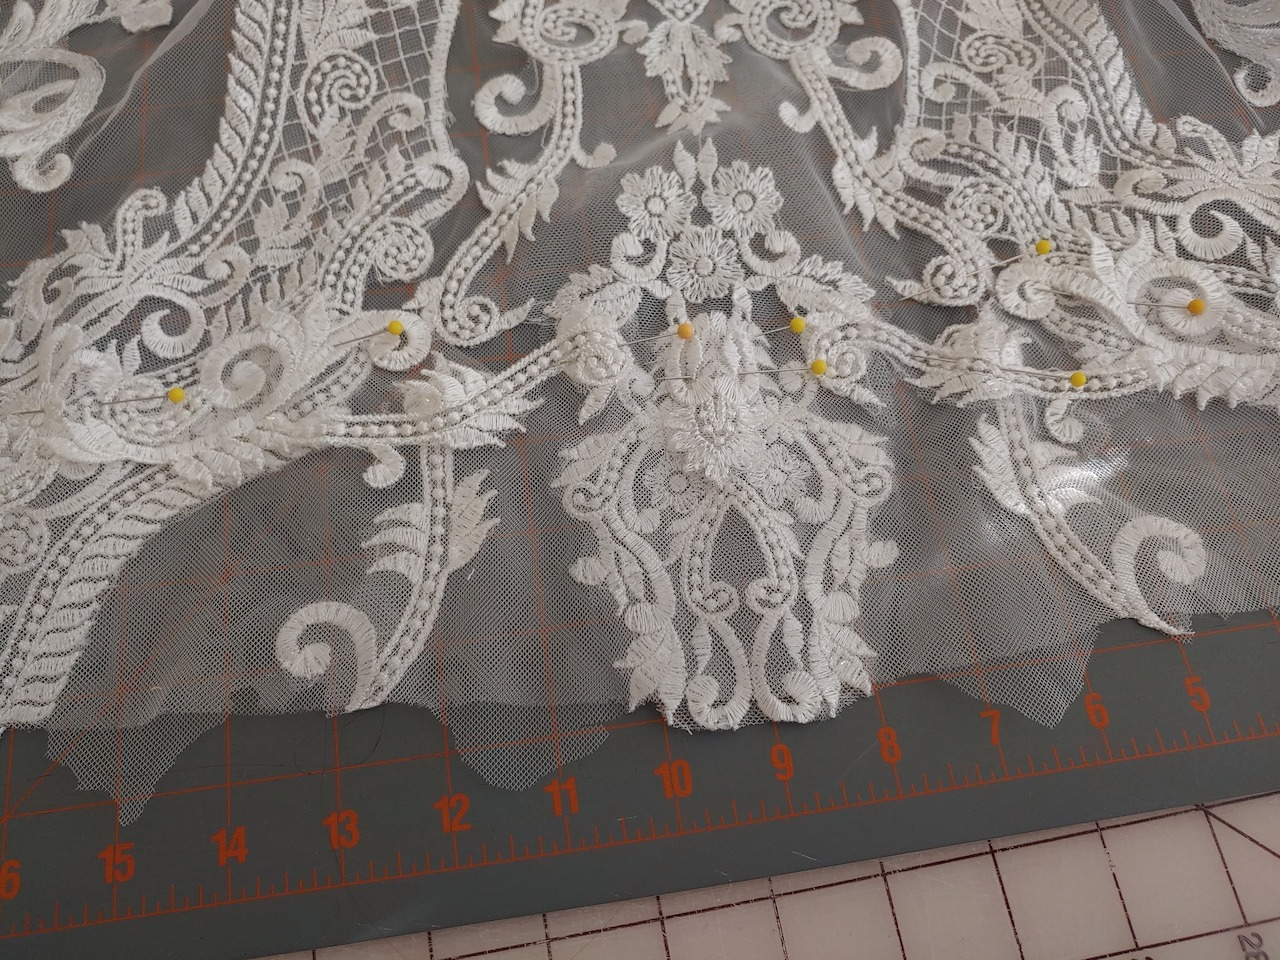 lace hem with netting border being measured